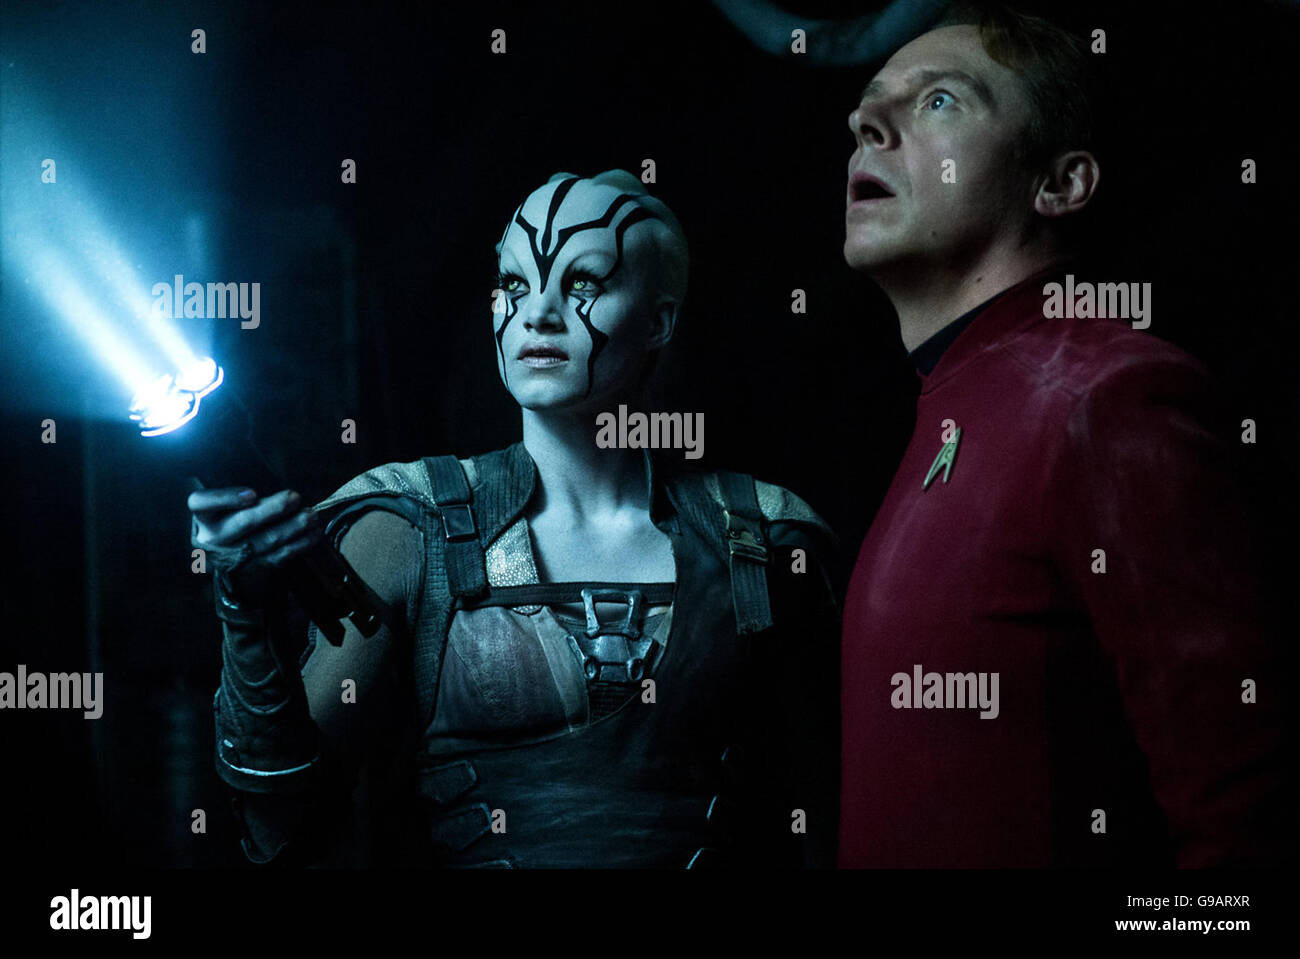 Star Trek Beyond is an upcoming American science fiction film and the sequel to Star Trek Into Darkness (2013). - Stock Image